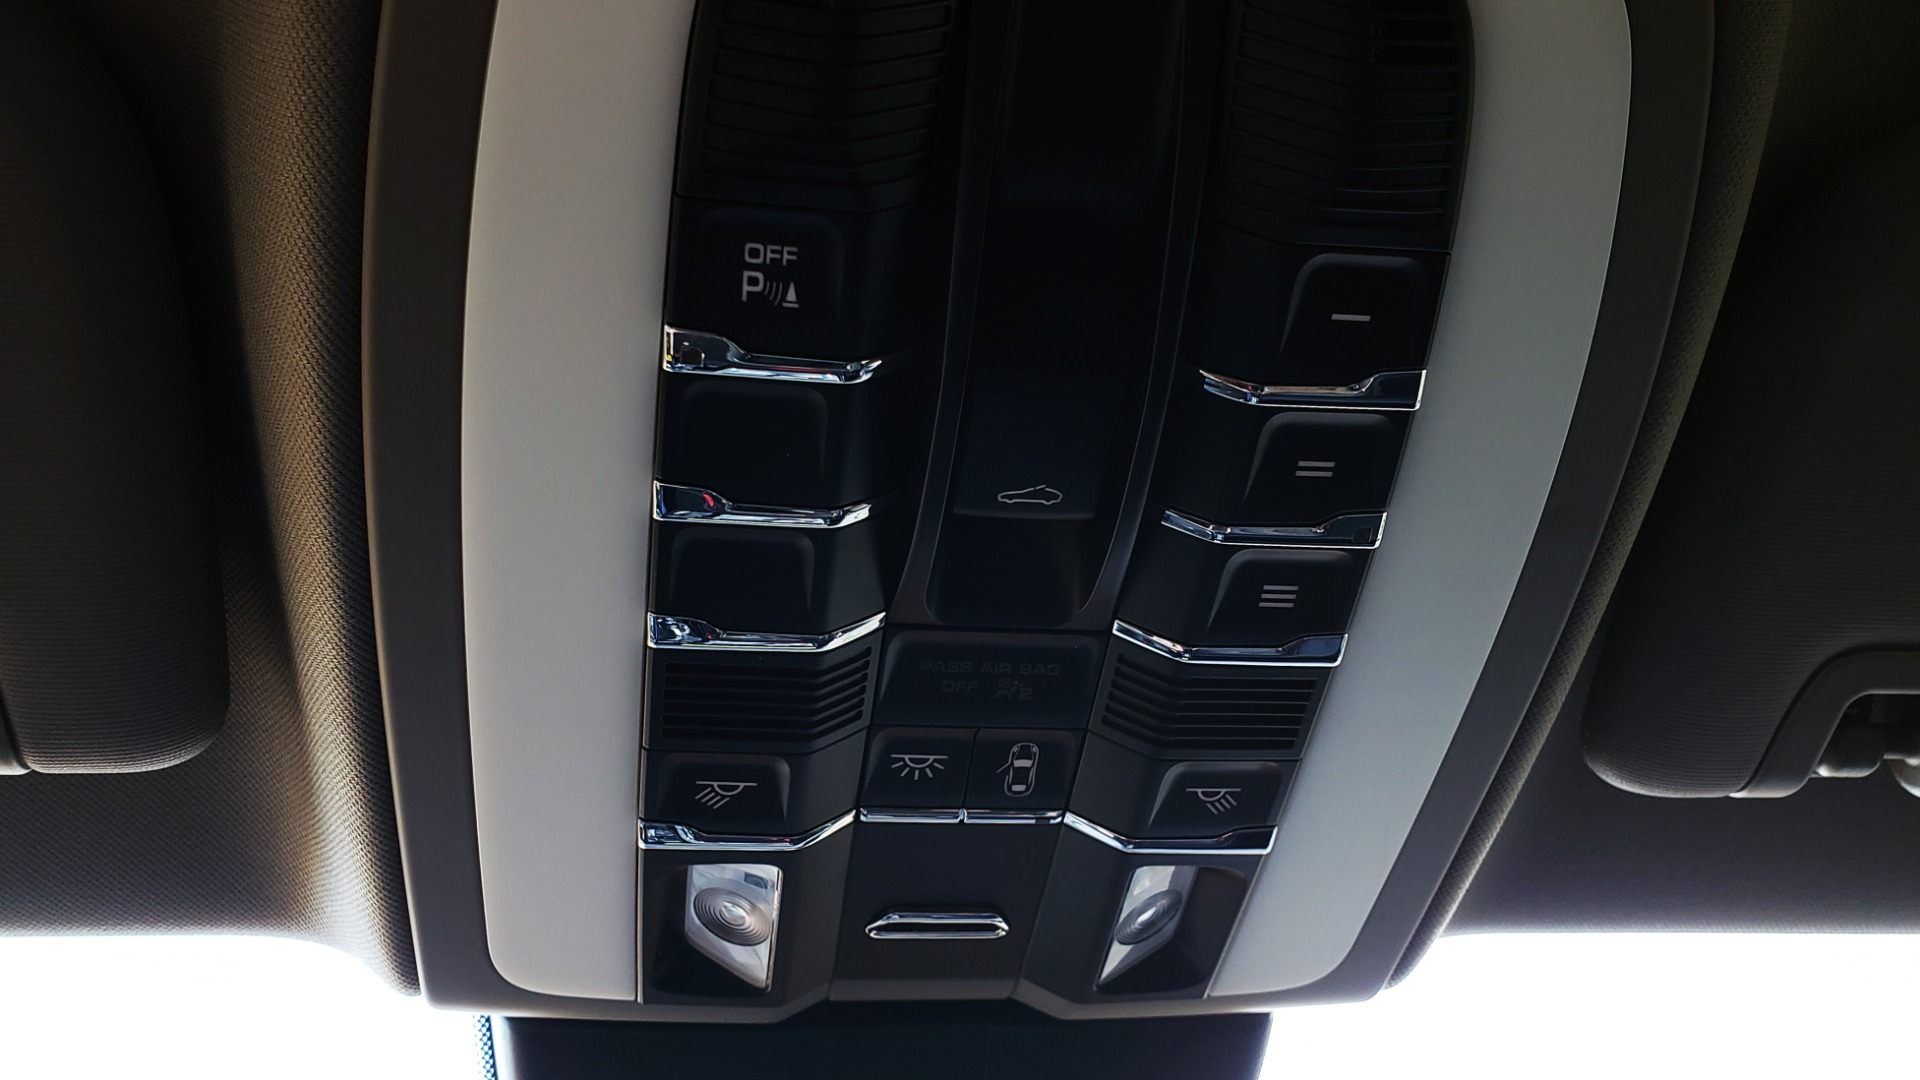 Used 2016 Porsche PANAMERA S / TURBO V6 / PDK / NAV / BOSE / SNRF / LDW / REARVIEW for sale Sold at Formula Imports in Charlotte NC 28227 70